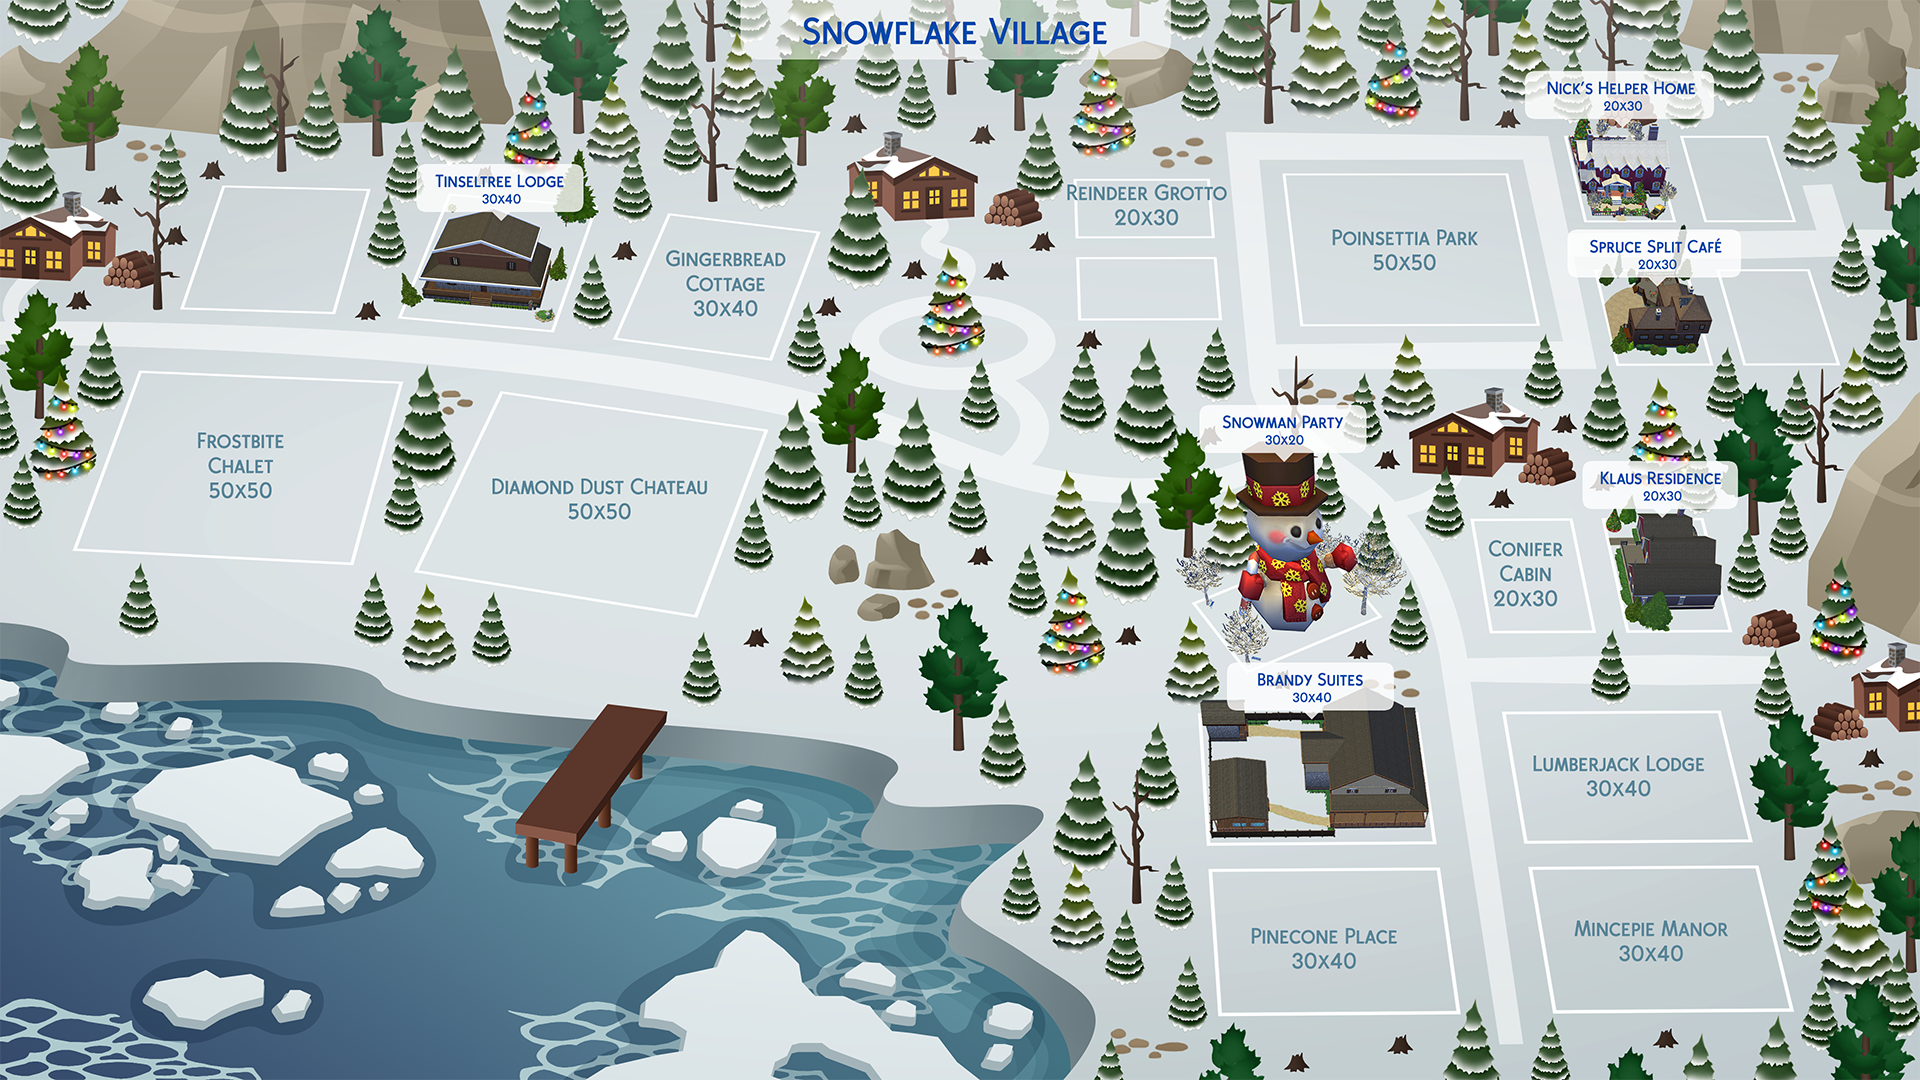 snowflake_village__ts4_fan_art__by_hazzaplumbob-dar9pg9.png